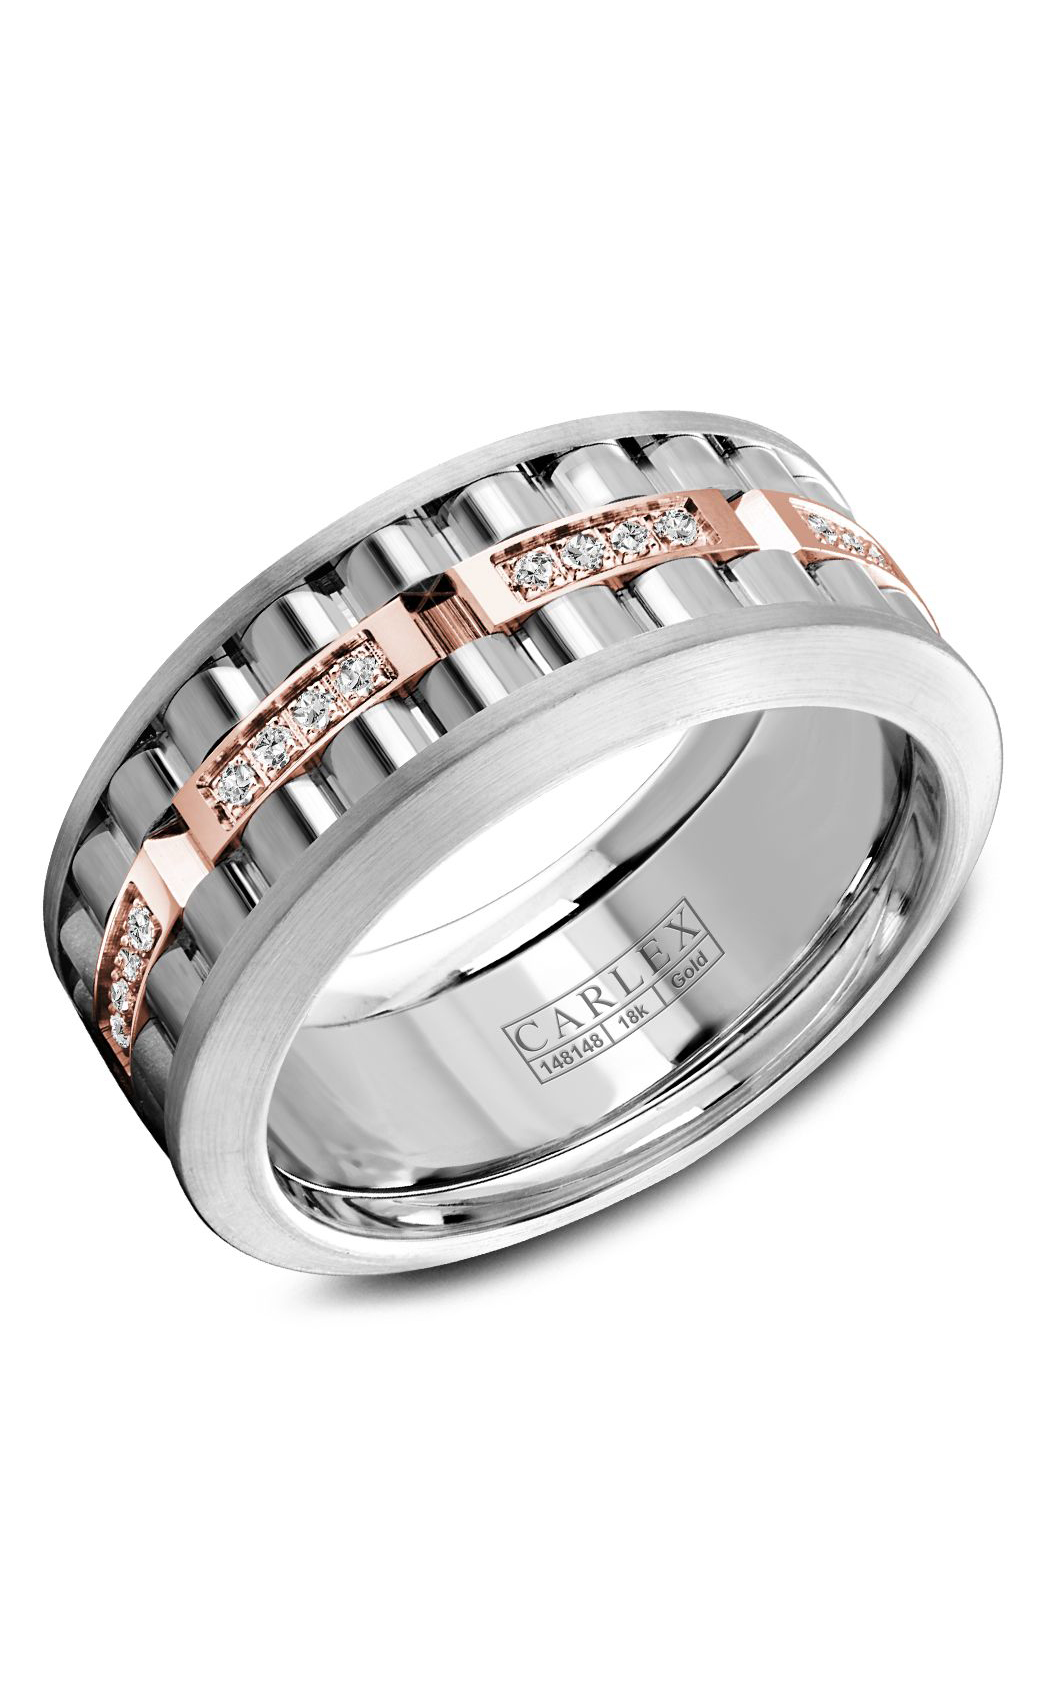 Carlex G3 Men's Wedding Band CX3-0046RWW product image